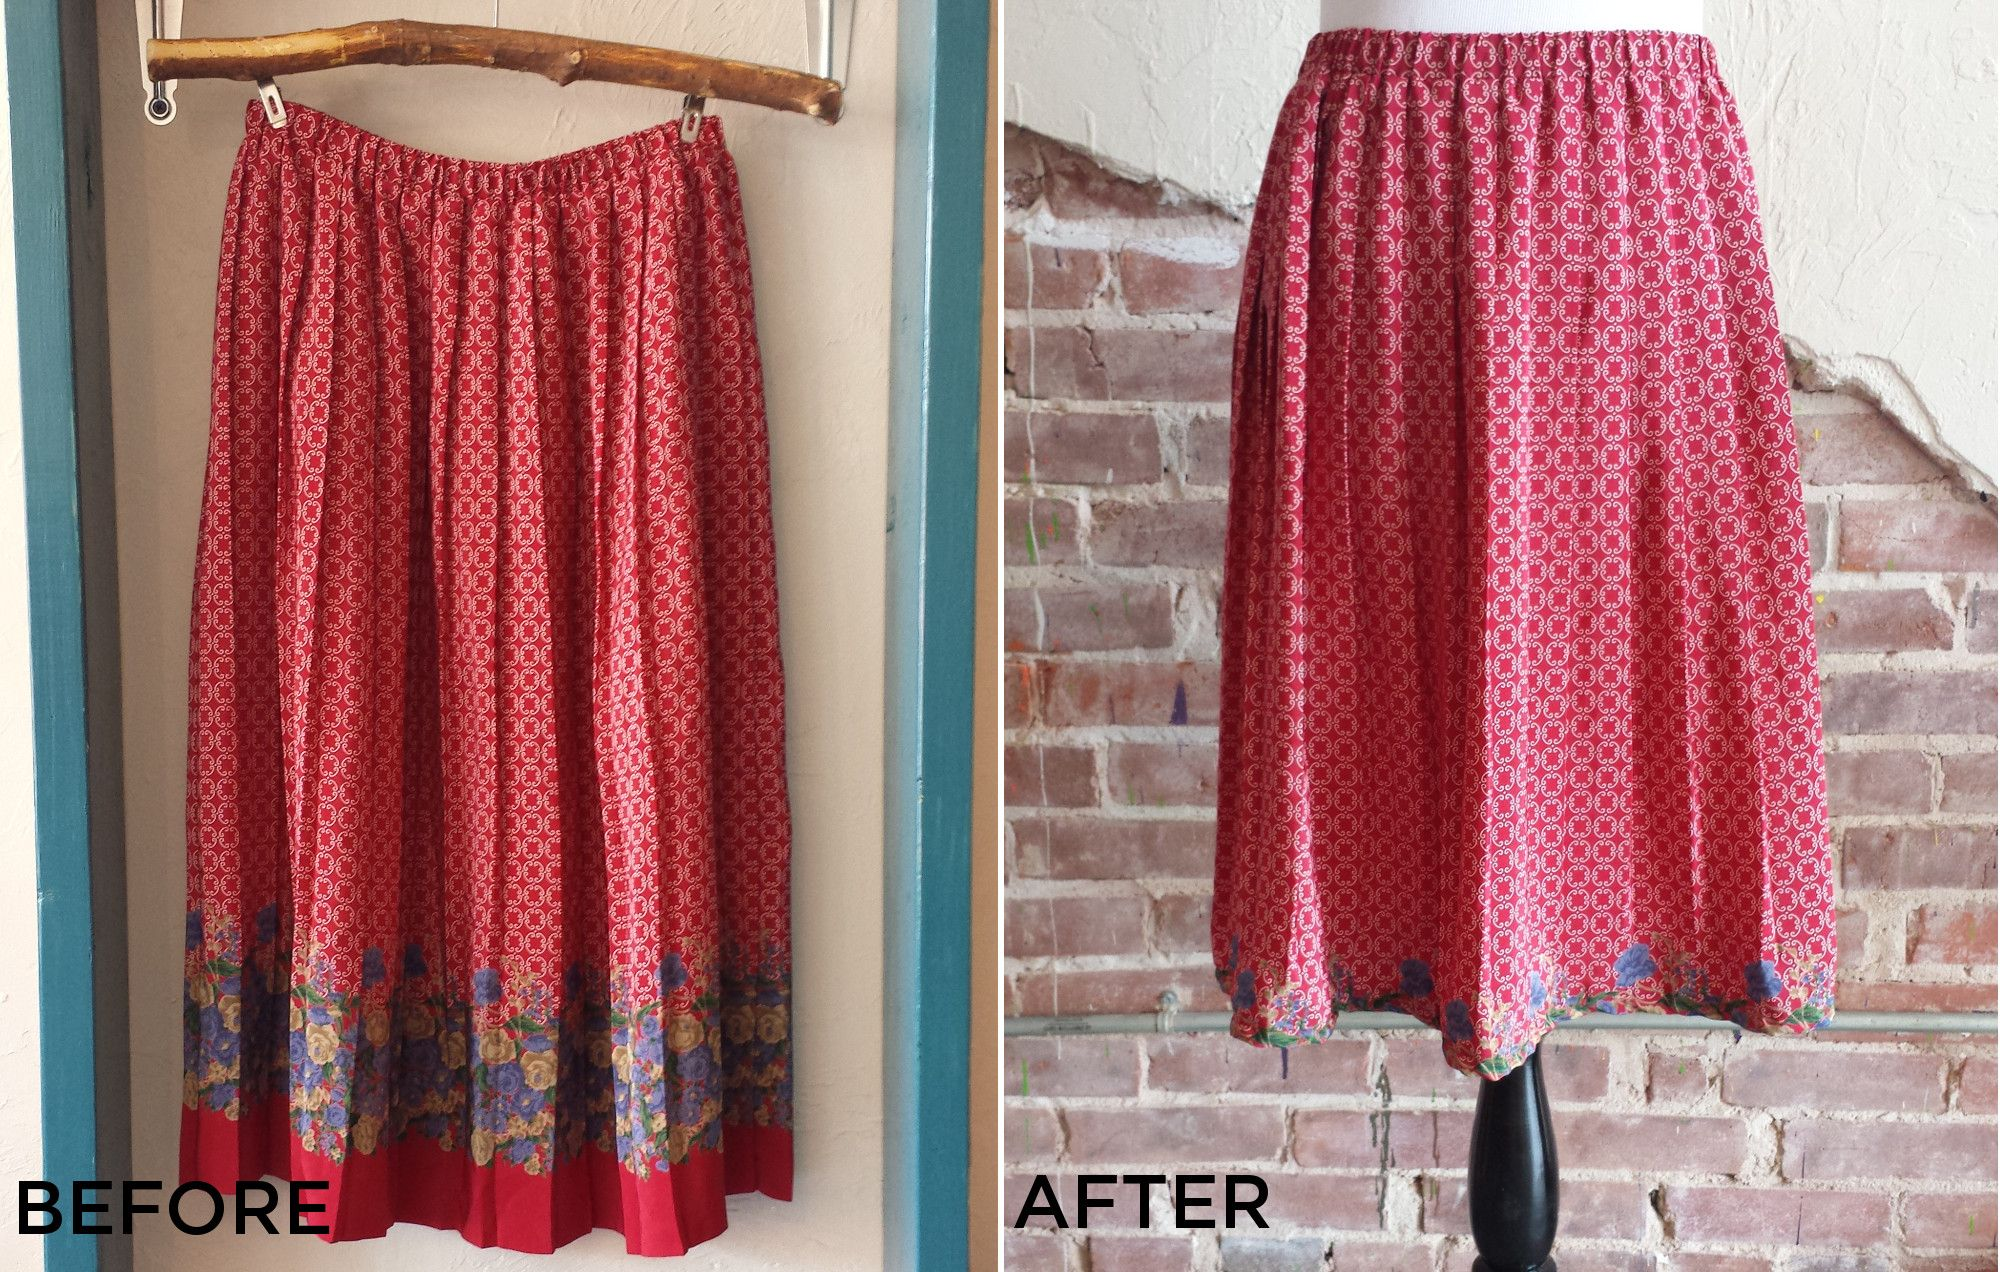 Upcycled red vintage skirt with flowers. Blog tutorial with before, during and after images!  #sewing #diy #upcycle #refashion #repurpose #vintage